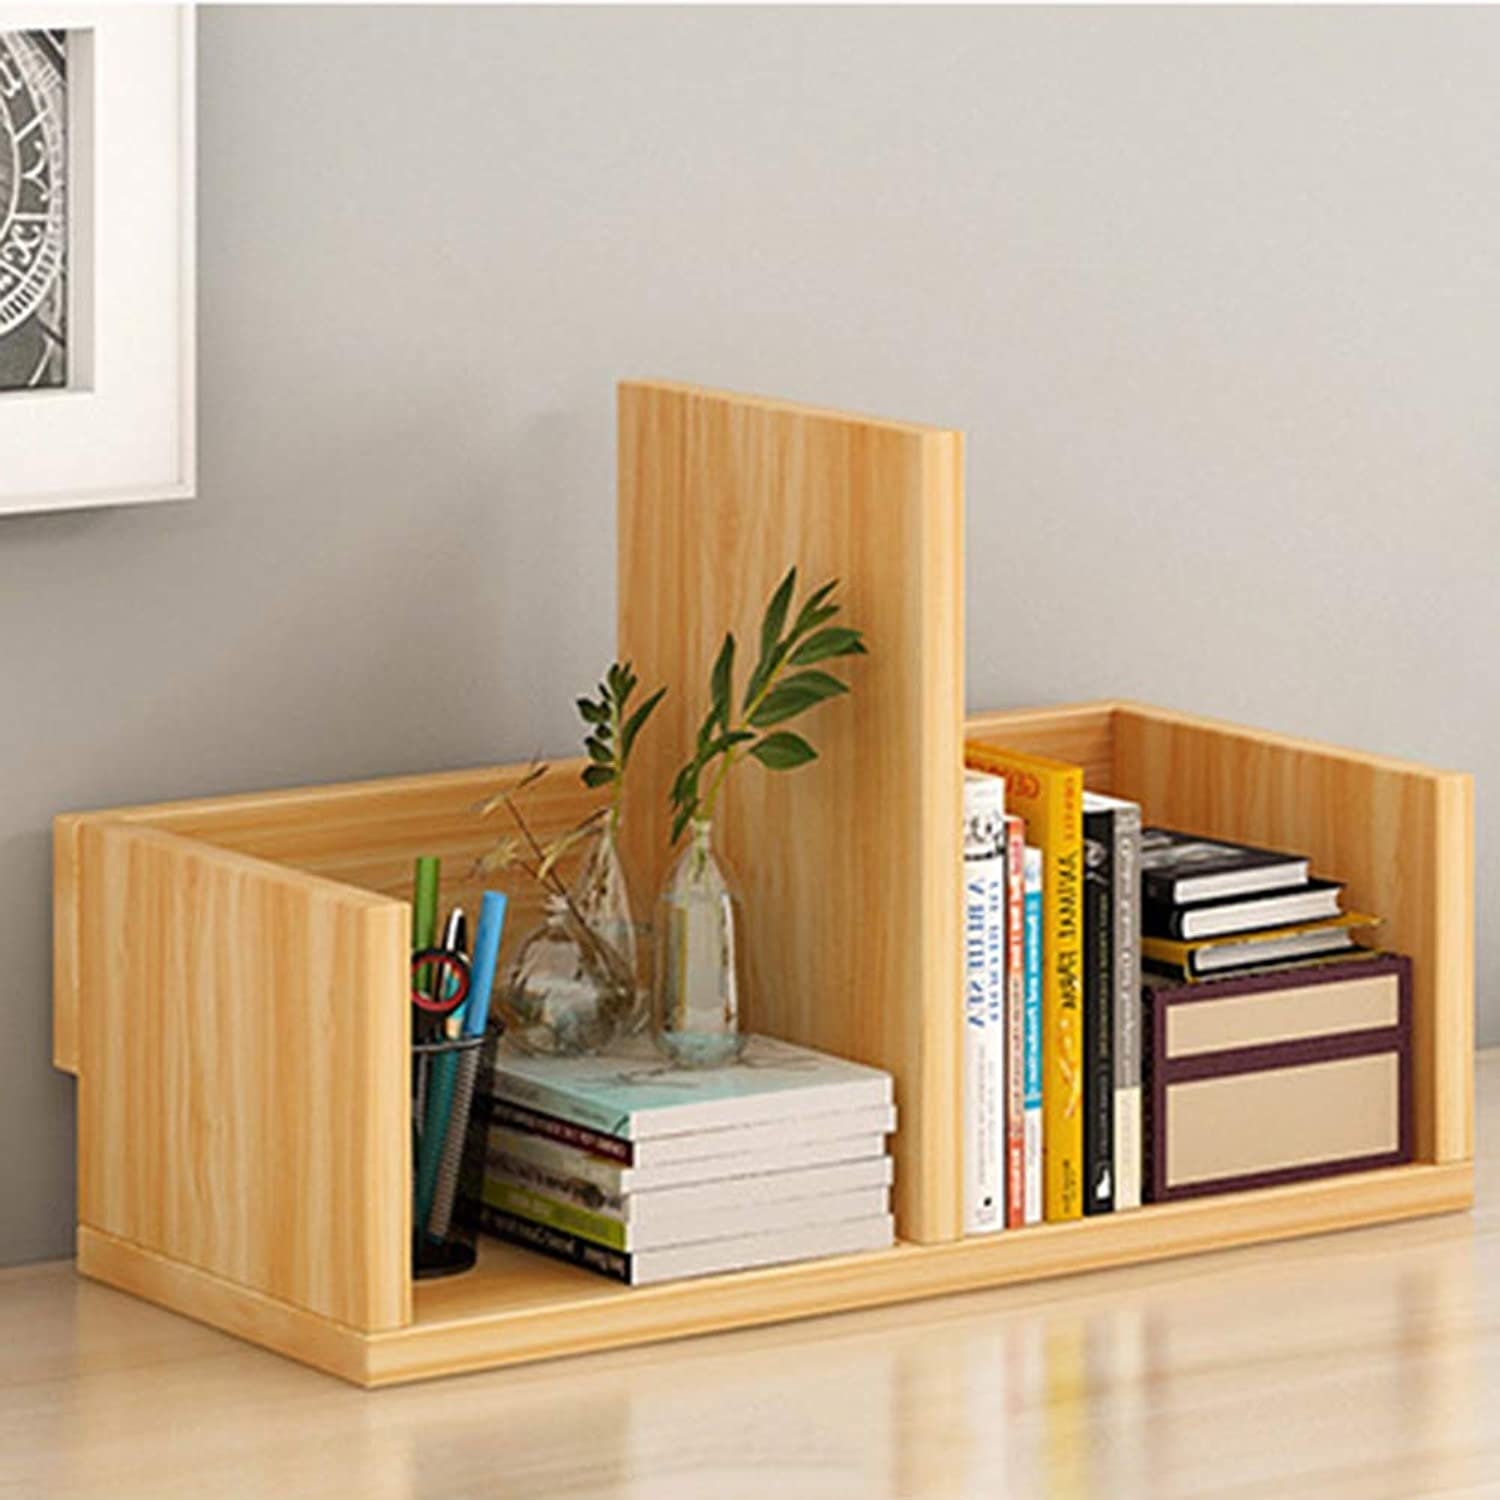 Bookcase Creative Table Small Bookshelf Desktop Shelves Simple Artificial Wood-Based Board Small Office Storage Rack (Self Assembly),A